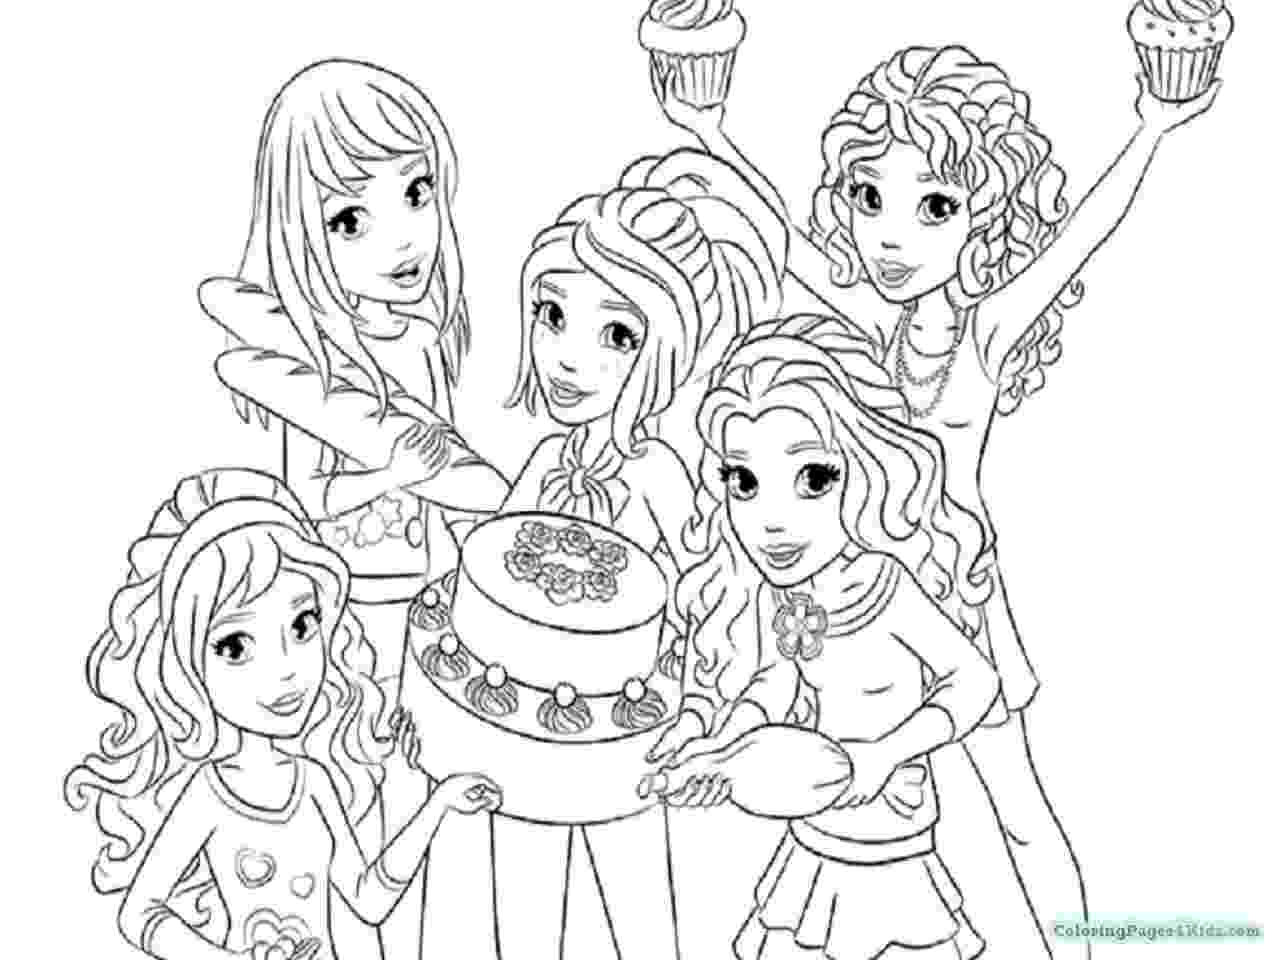 lego friends colouring pictures lego friends all coloring page for kids printable free pictures lego colouring friends